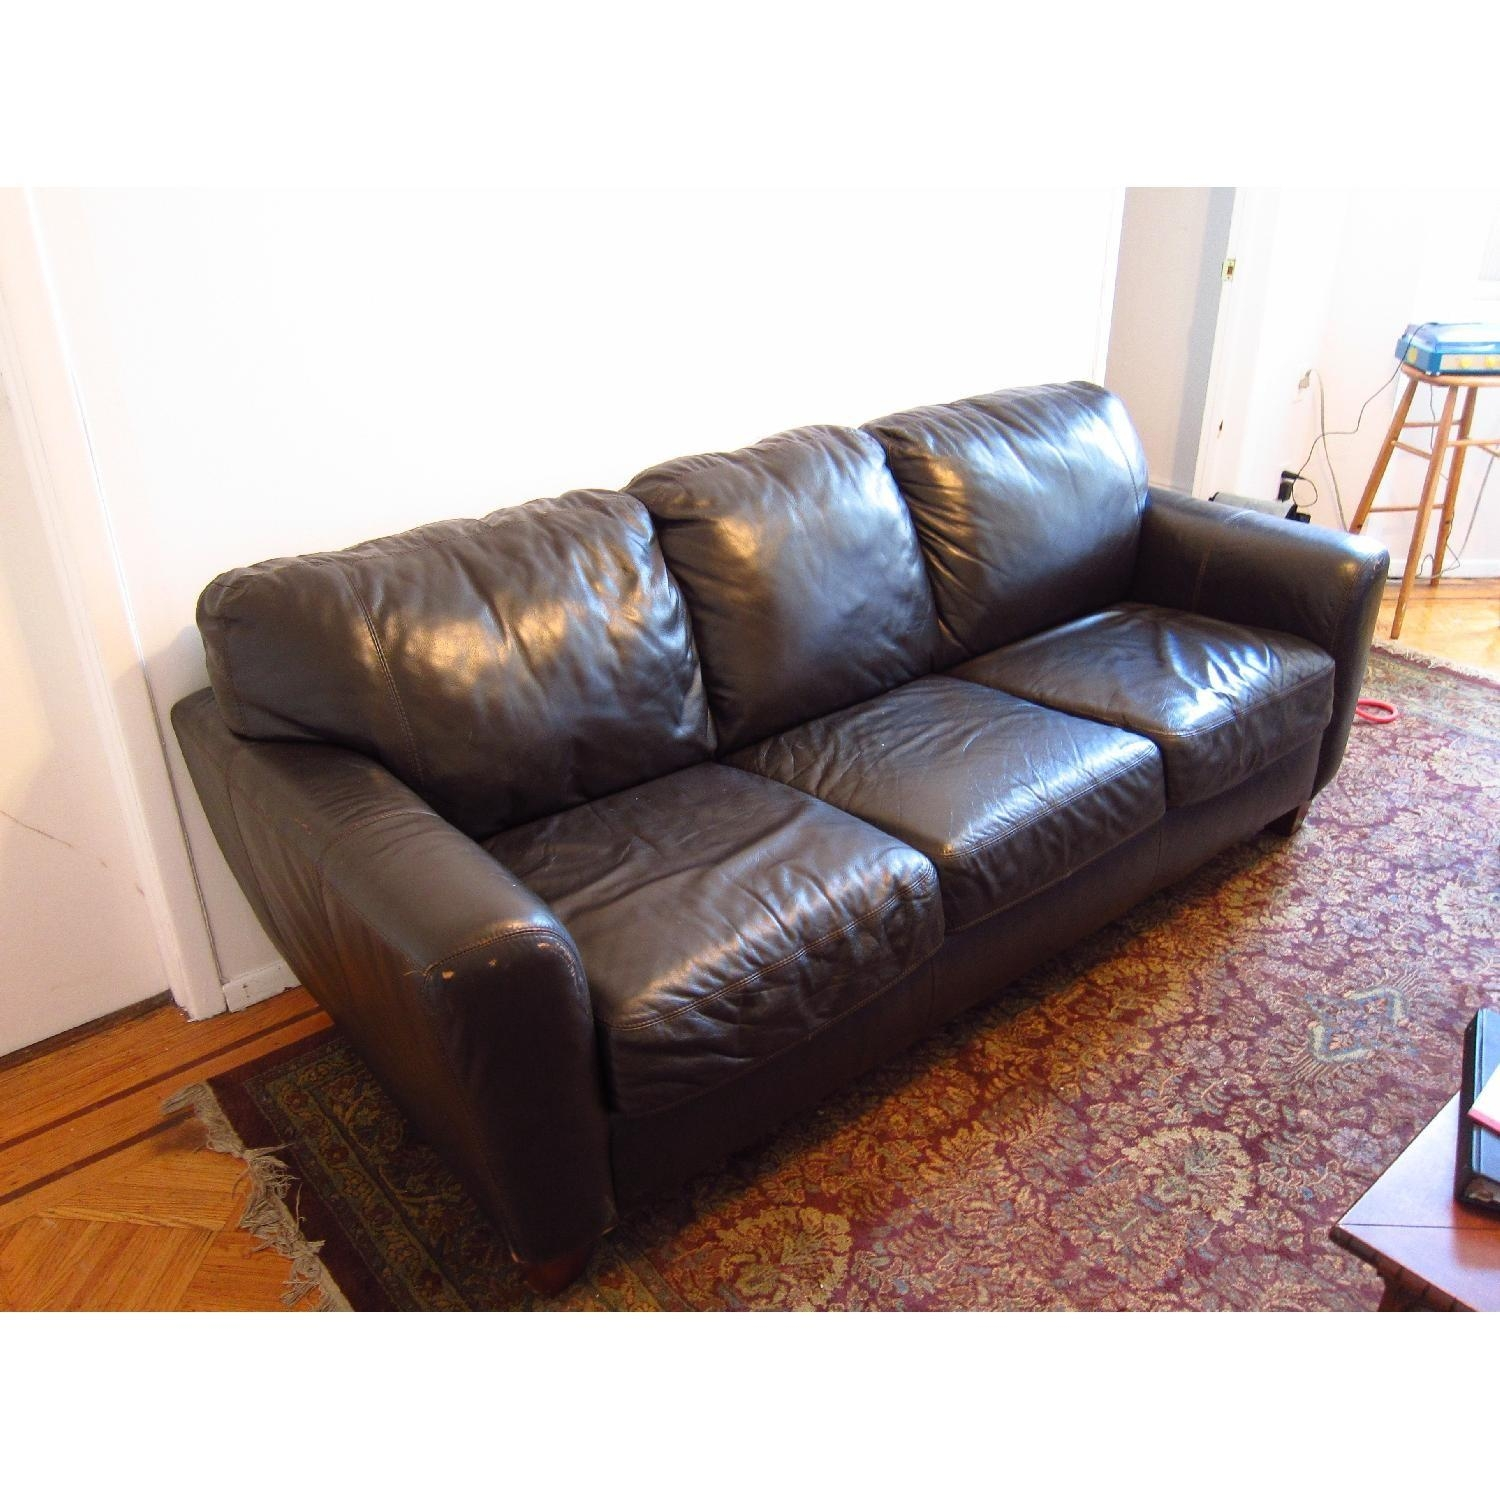 3 Seater Leather Sofa Aptdeco Inside 3 Seater Leather Sofas (Image 1 of 15)